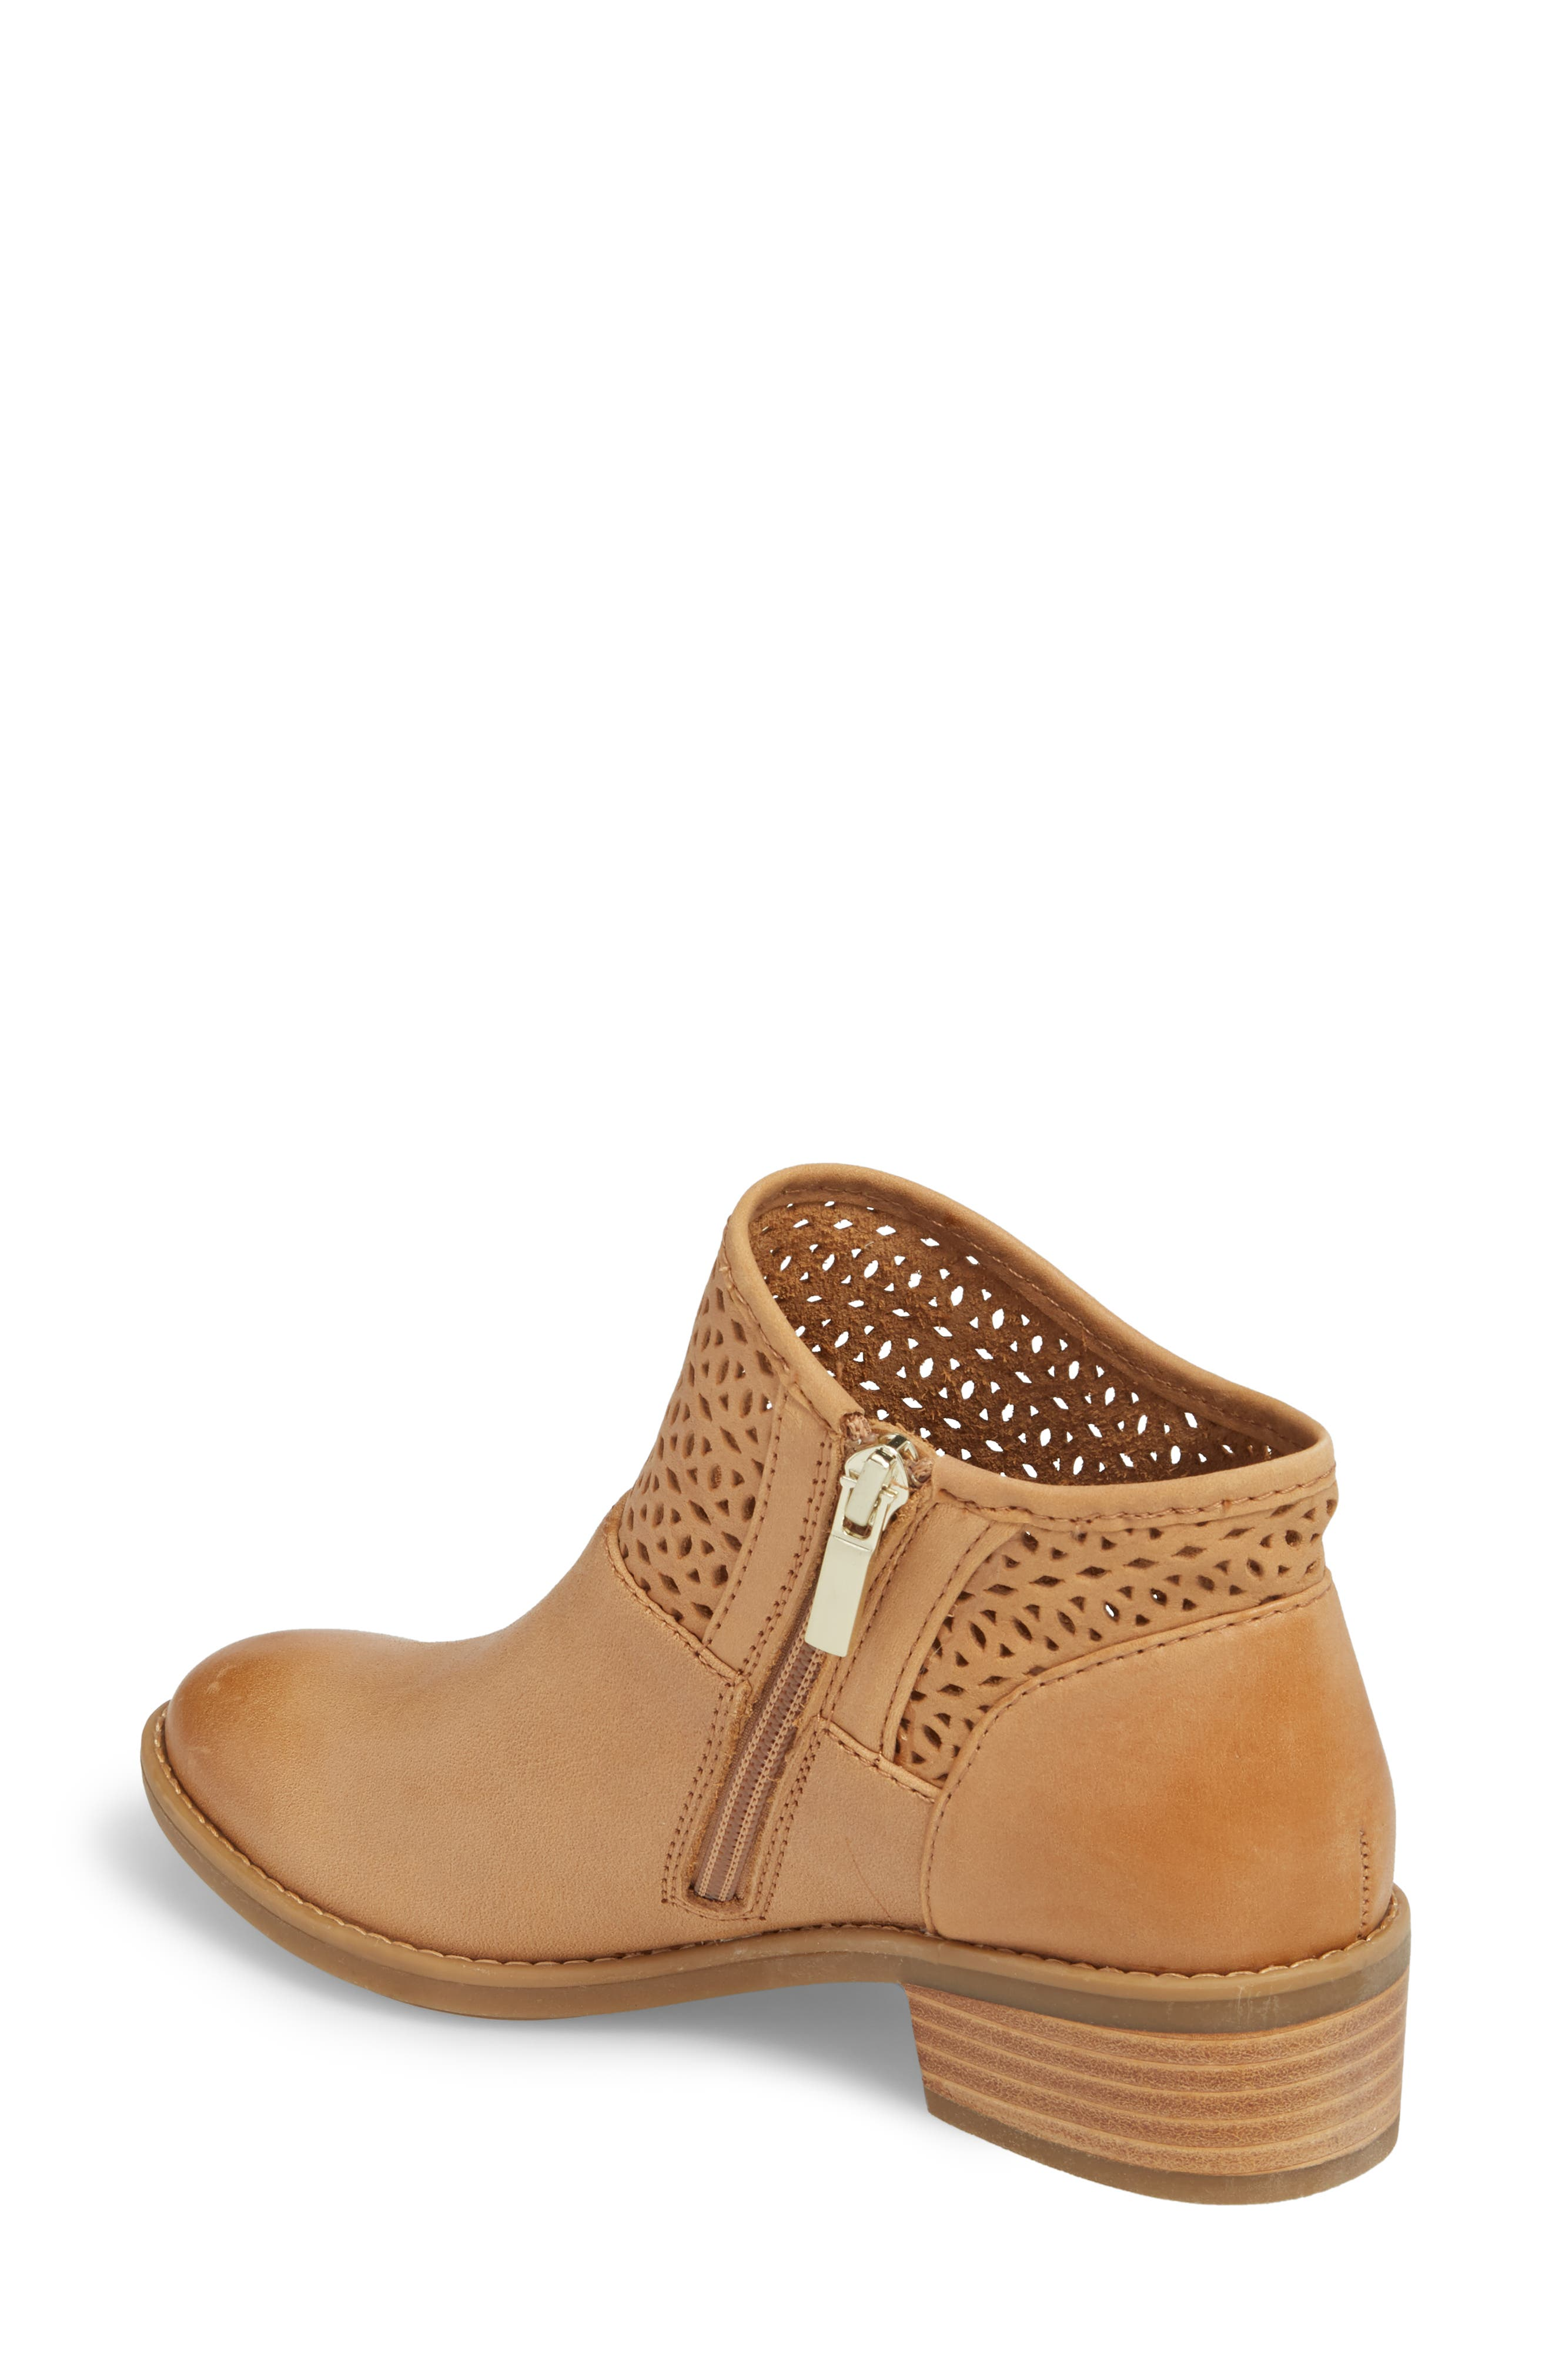 Caileen Bootie,                             Alternate thumbnail 2, color,                             NEW CARAMEL